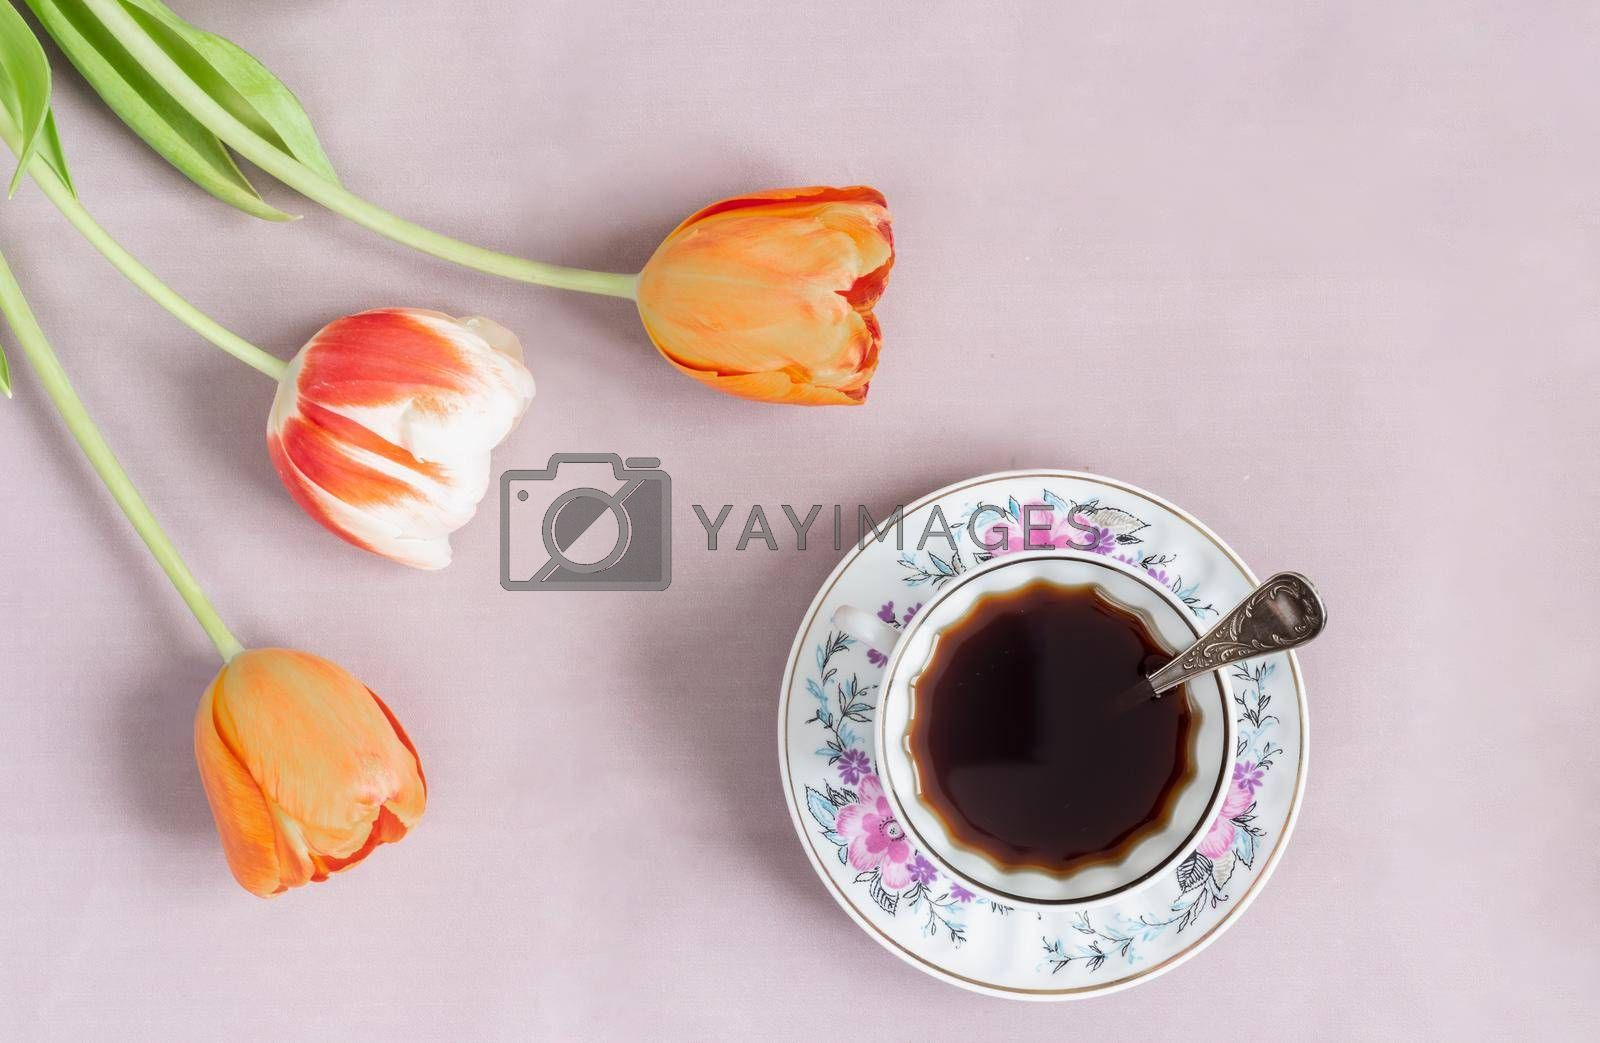 Alternative coffee substitute: a hot decaffeinated drink made from natural chicory, on the table in a white cup. Tulips grow nearby. Top view, copy space